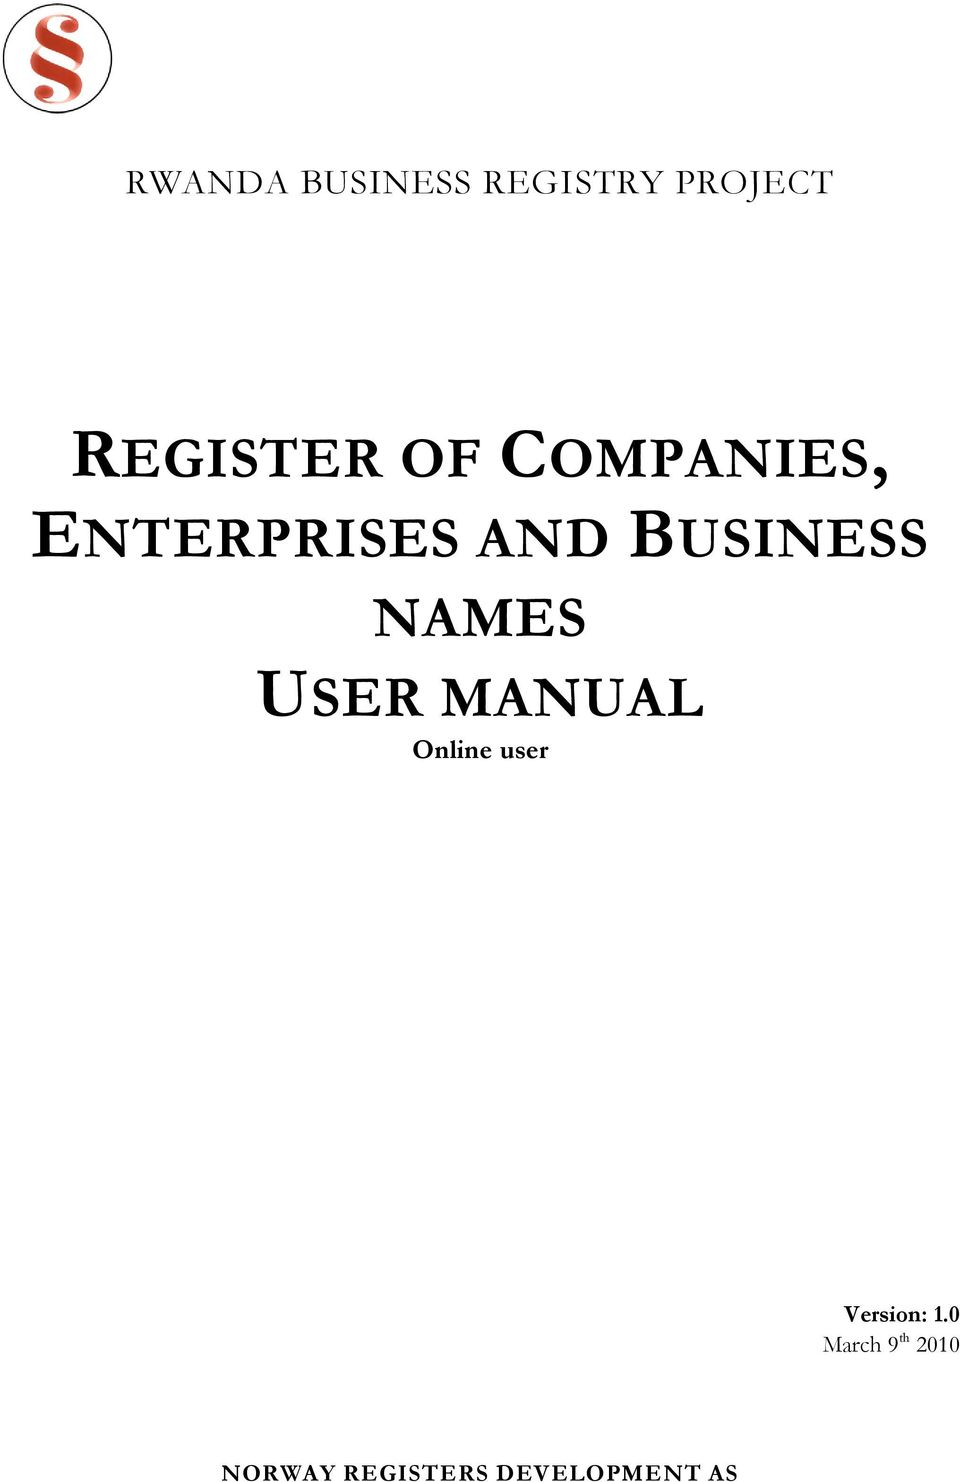 NAMES USER MANUAL Online user Version: 1.